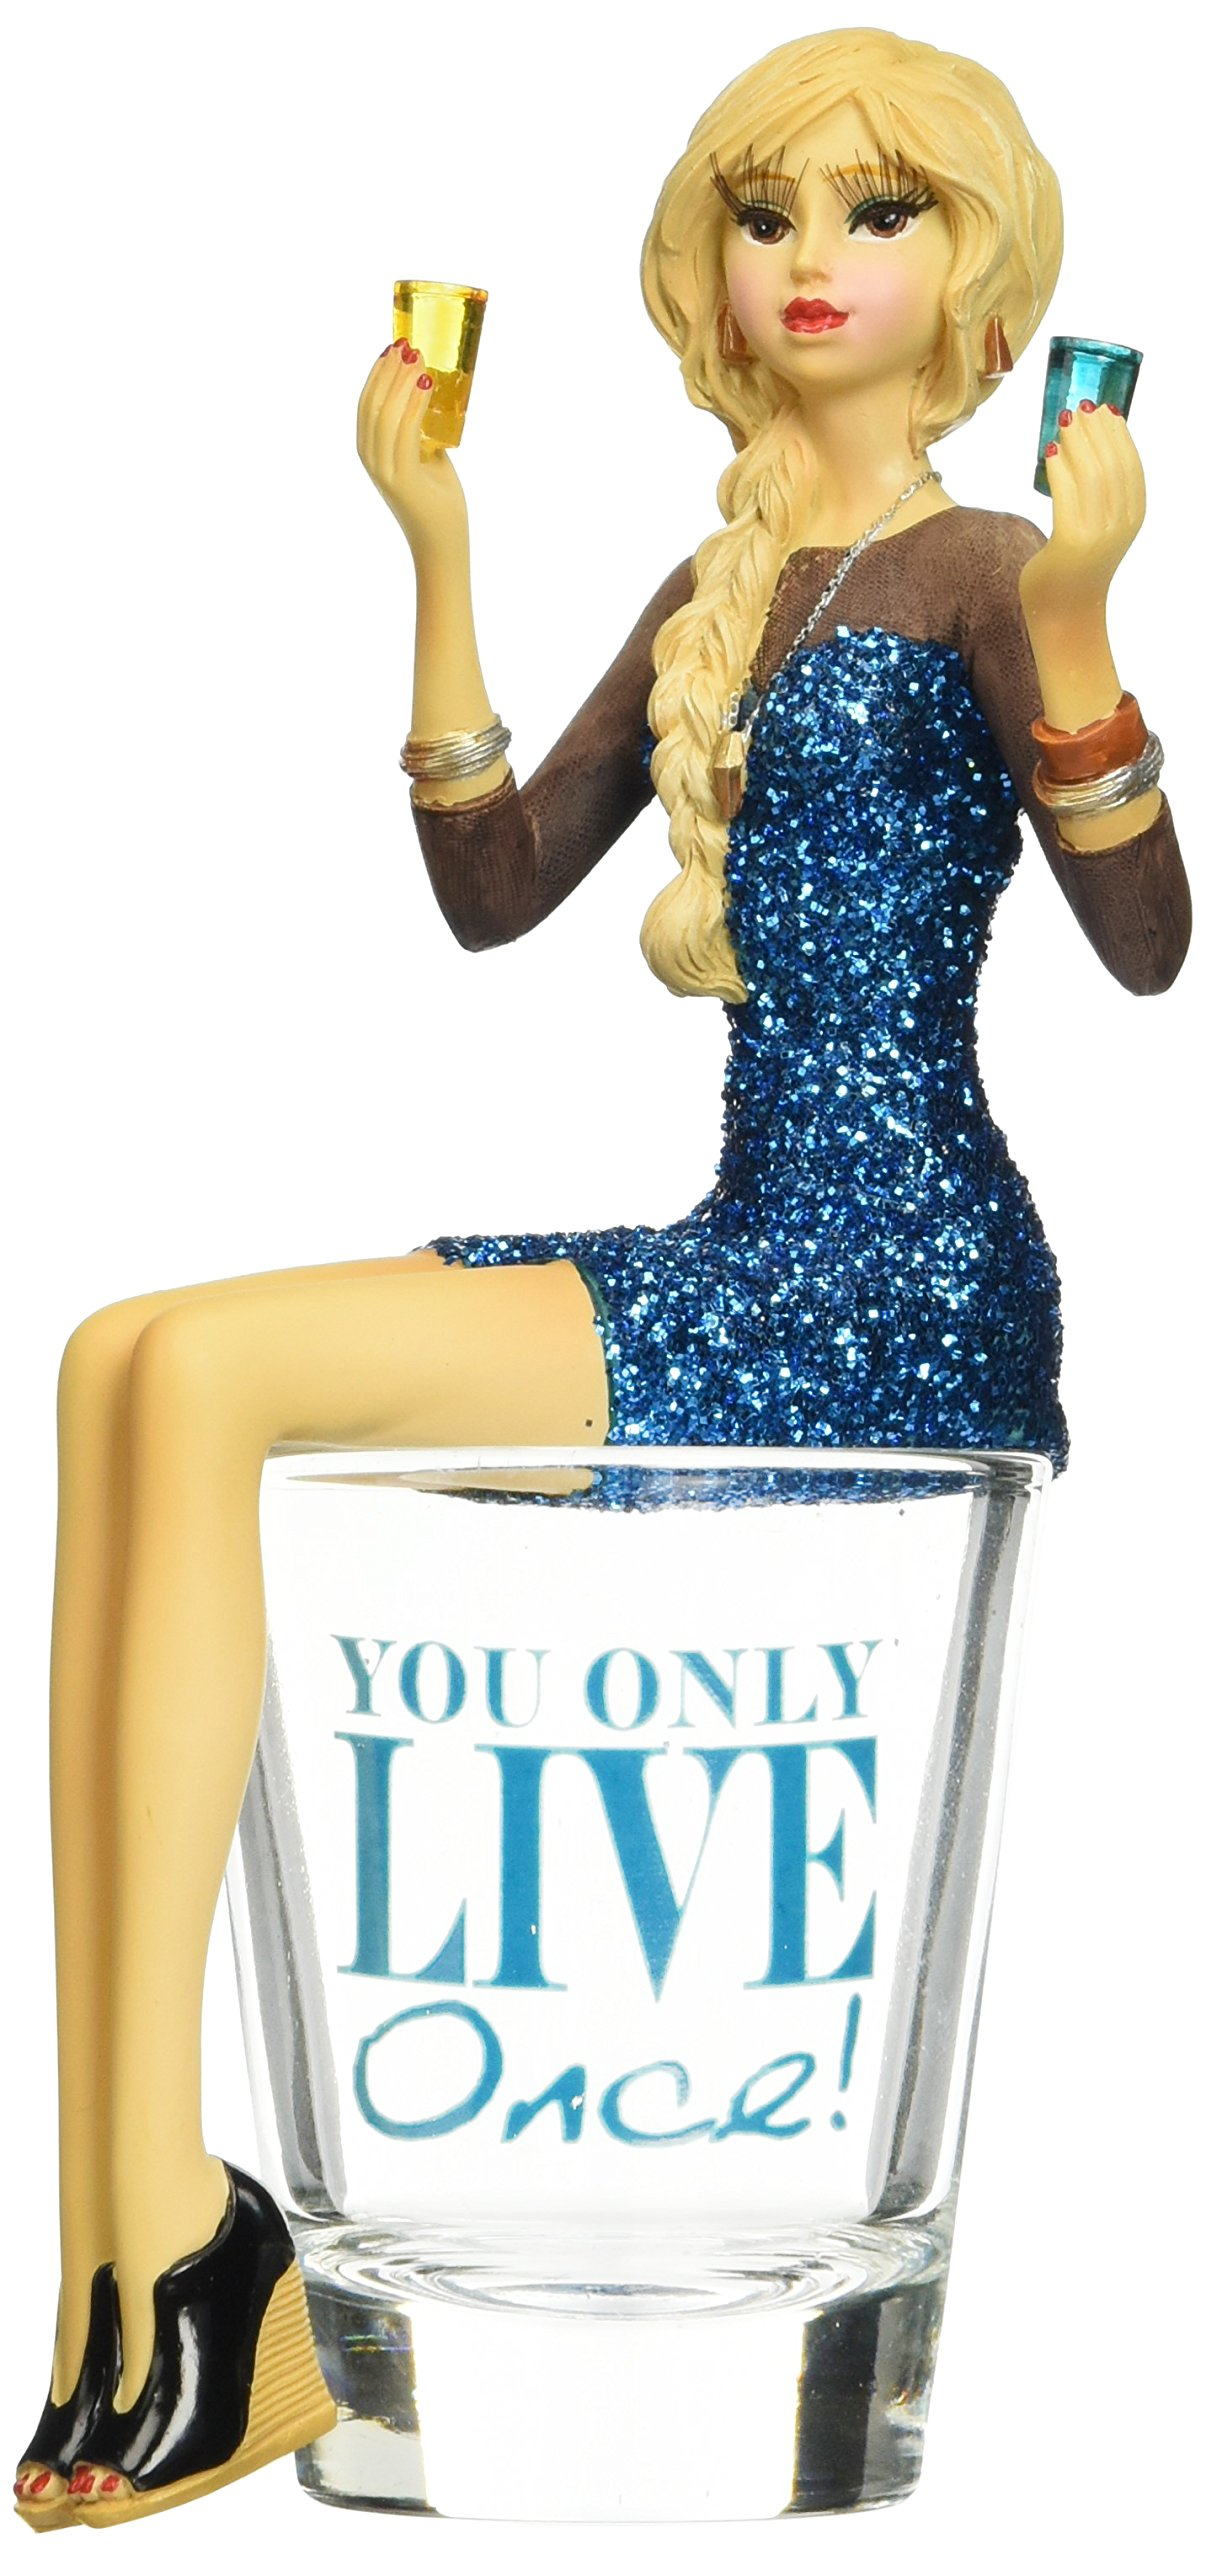 Pavilion Gift Company 73701 You Only Live Once Girl in Shot Glass, 5-3/4-Inch High